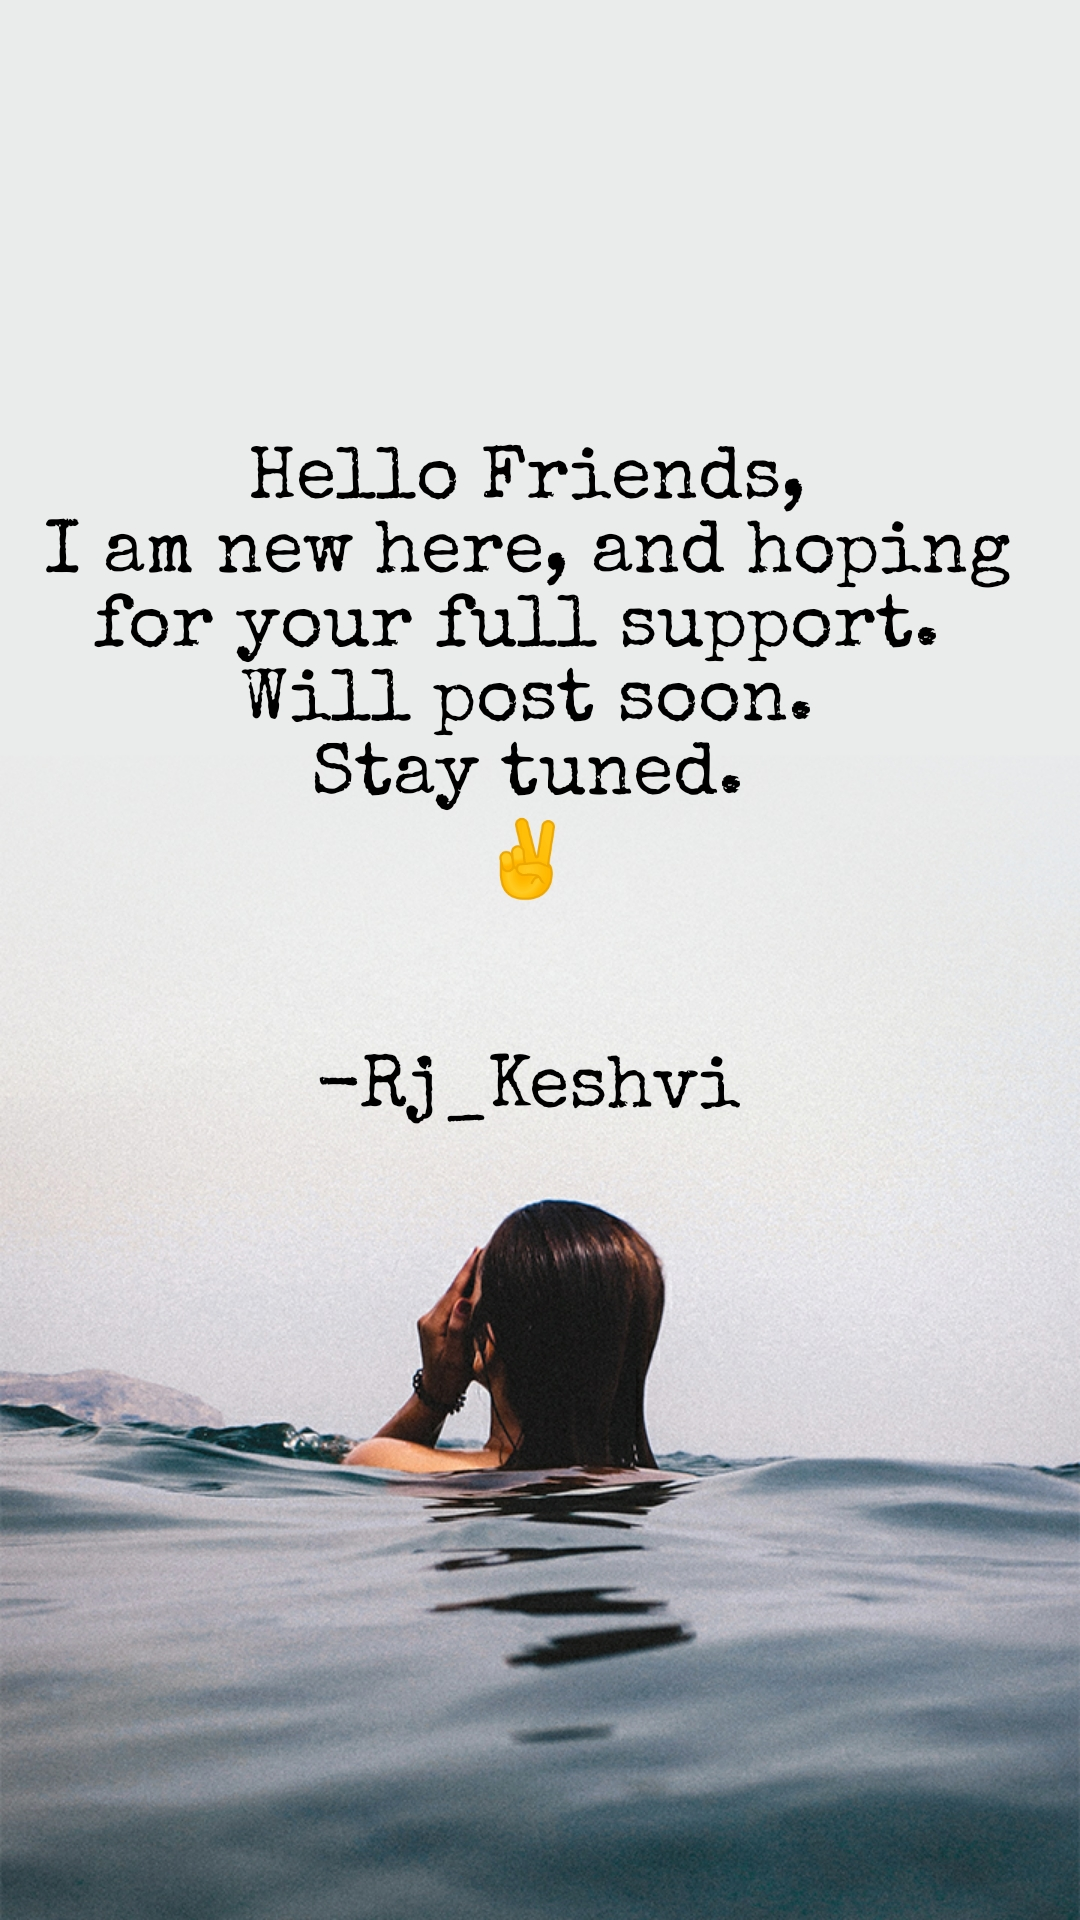 Hello Friends, I am new here, and hoping for your full support.  Will post soon. Stay tuned. ✌️   -Rj_Keshvi